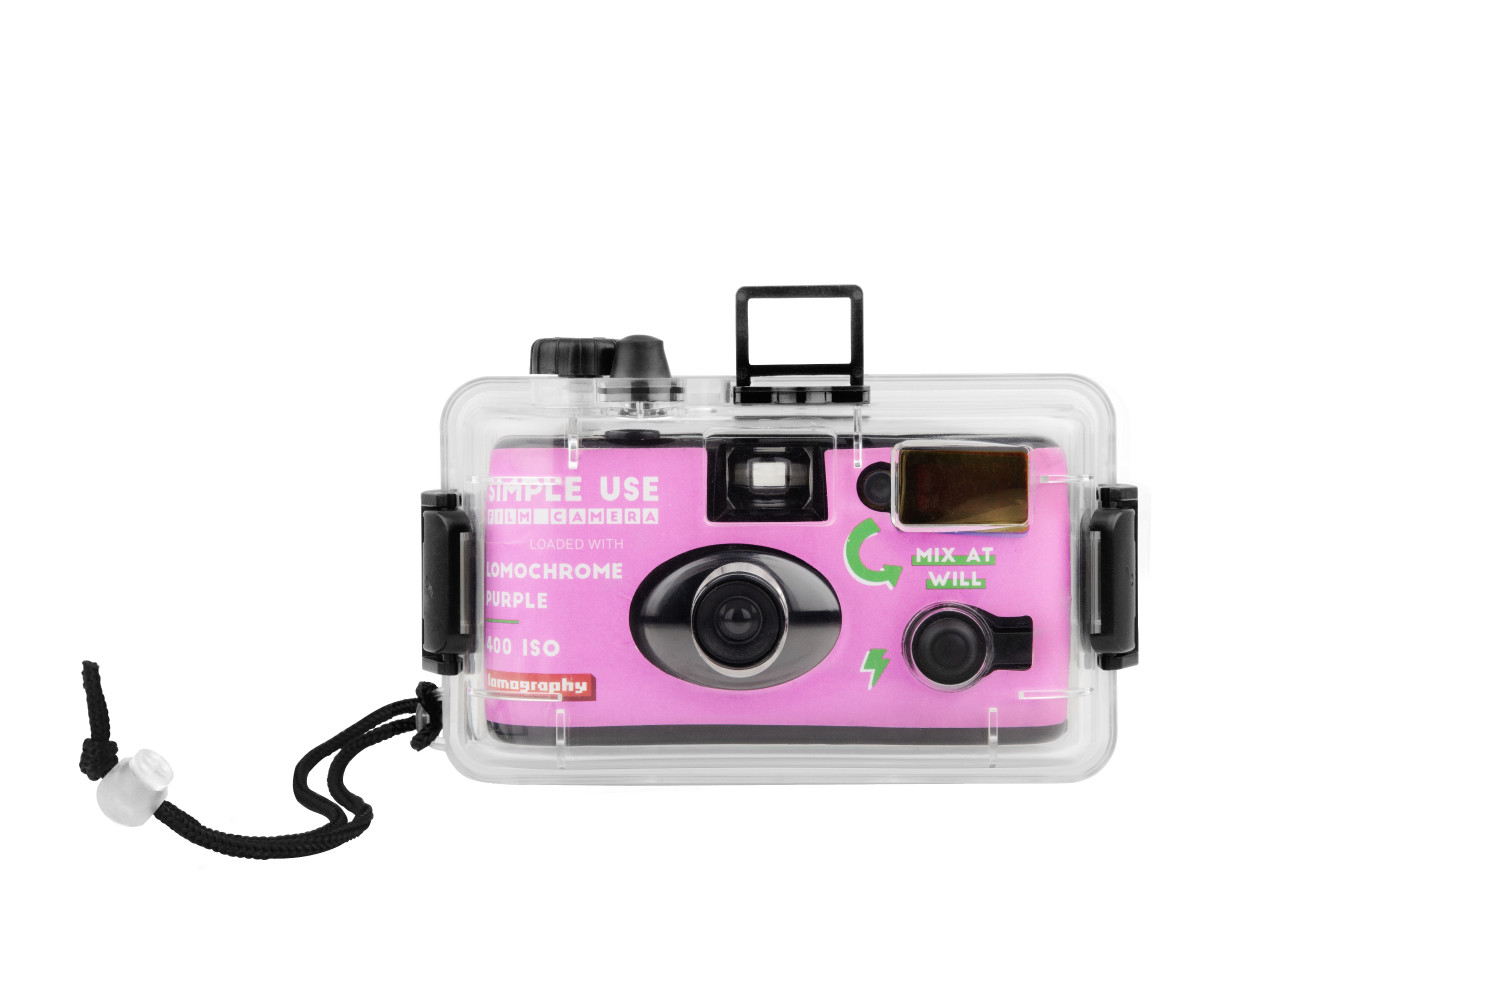 Analogue Aqua - Simple Use Reloadable Camera & Underwater Case - LomoChrome Purple